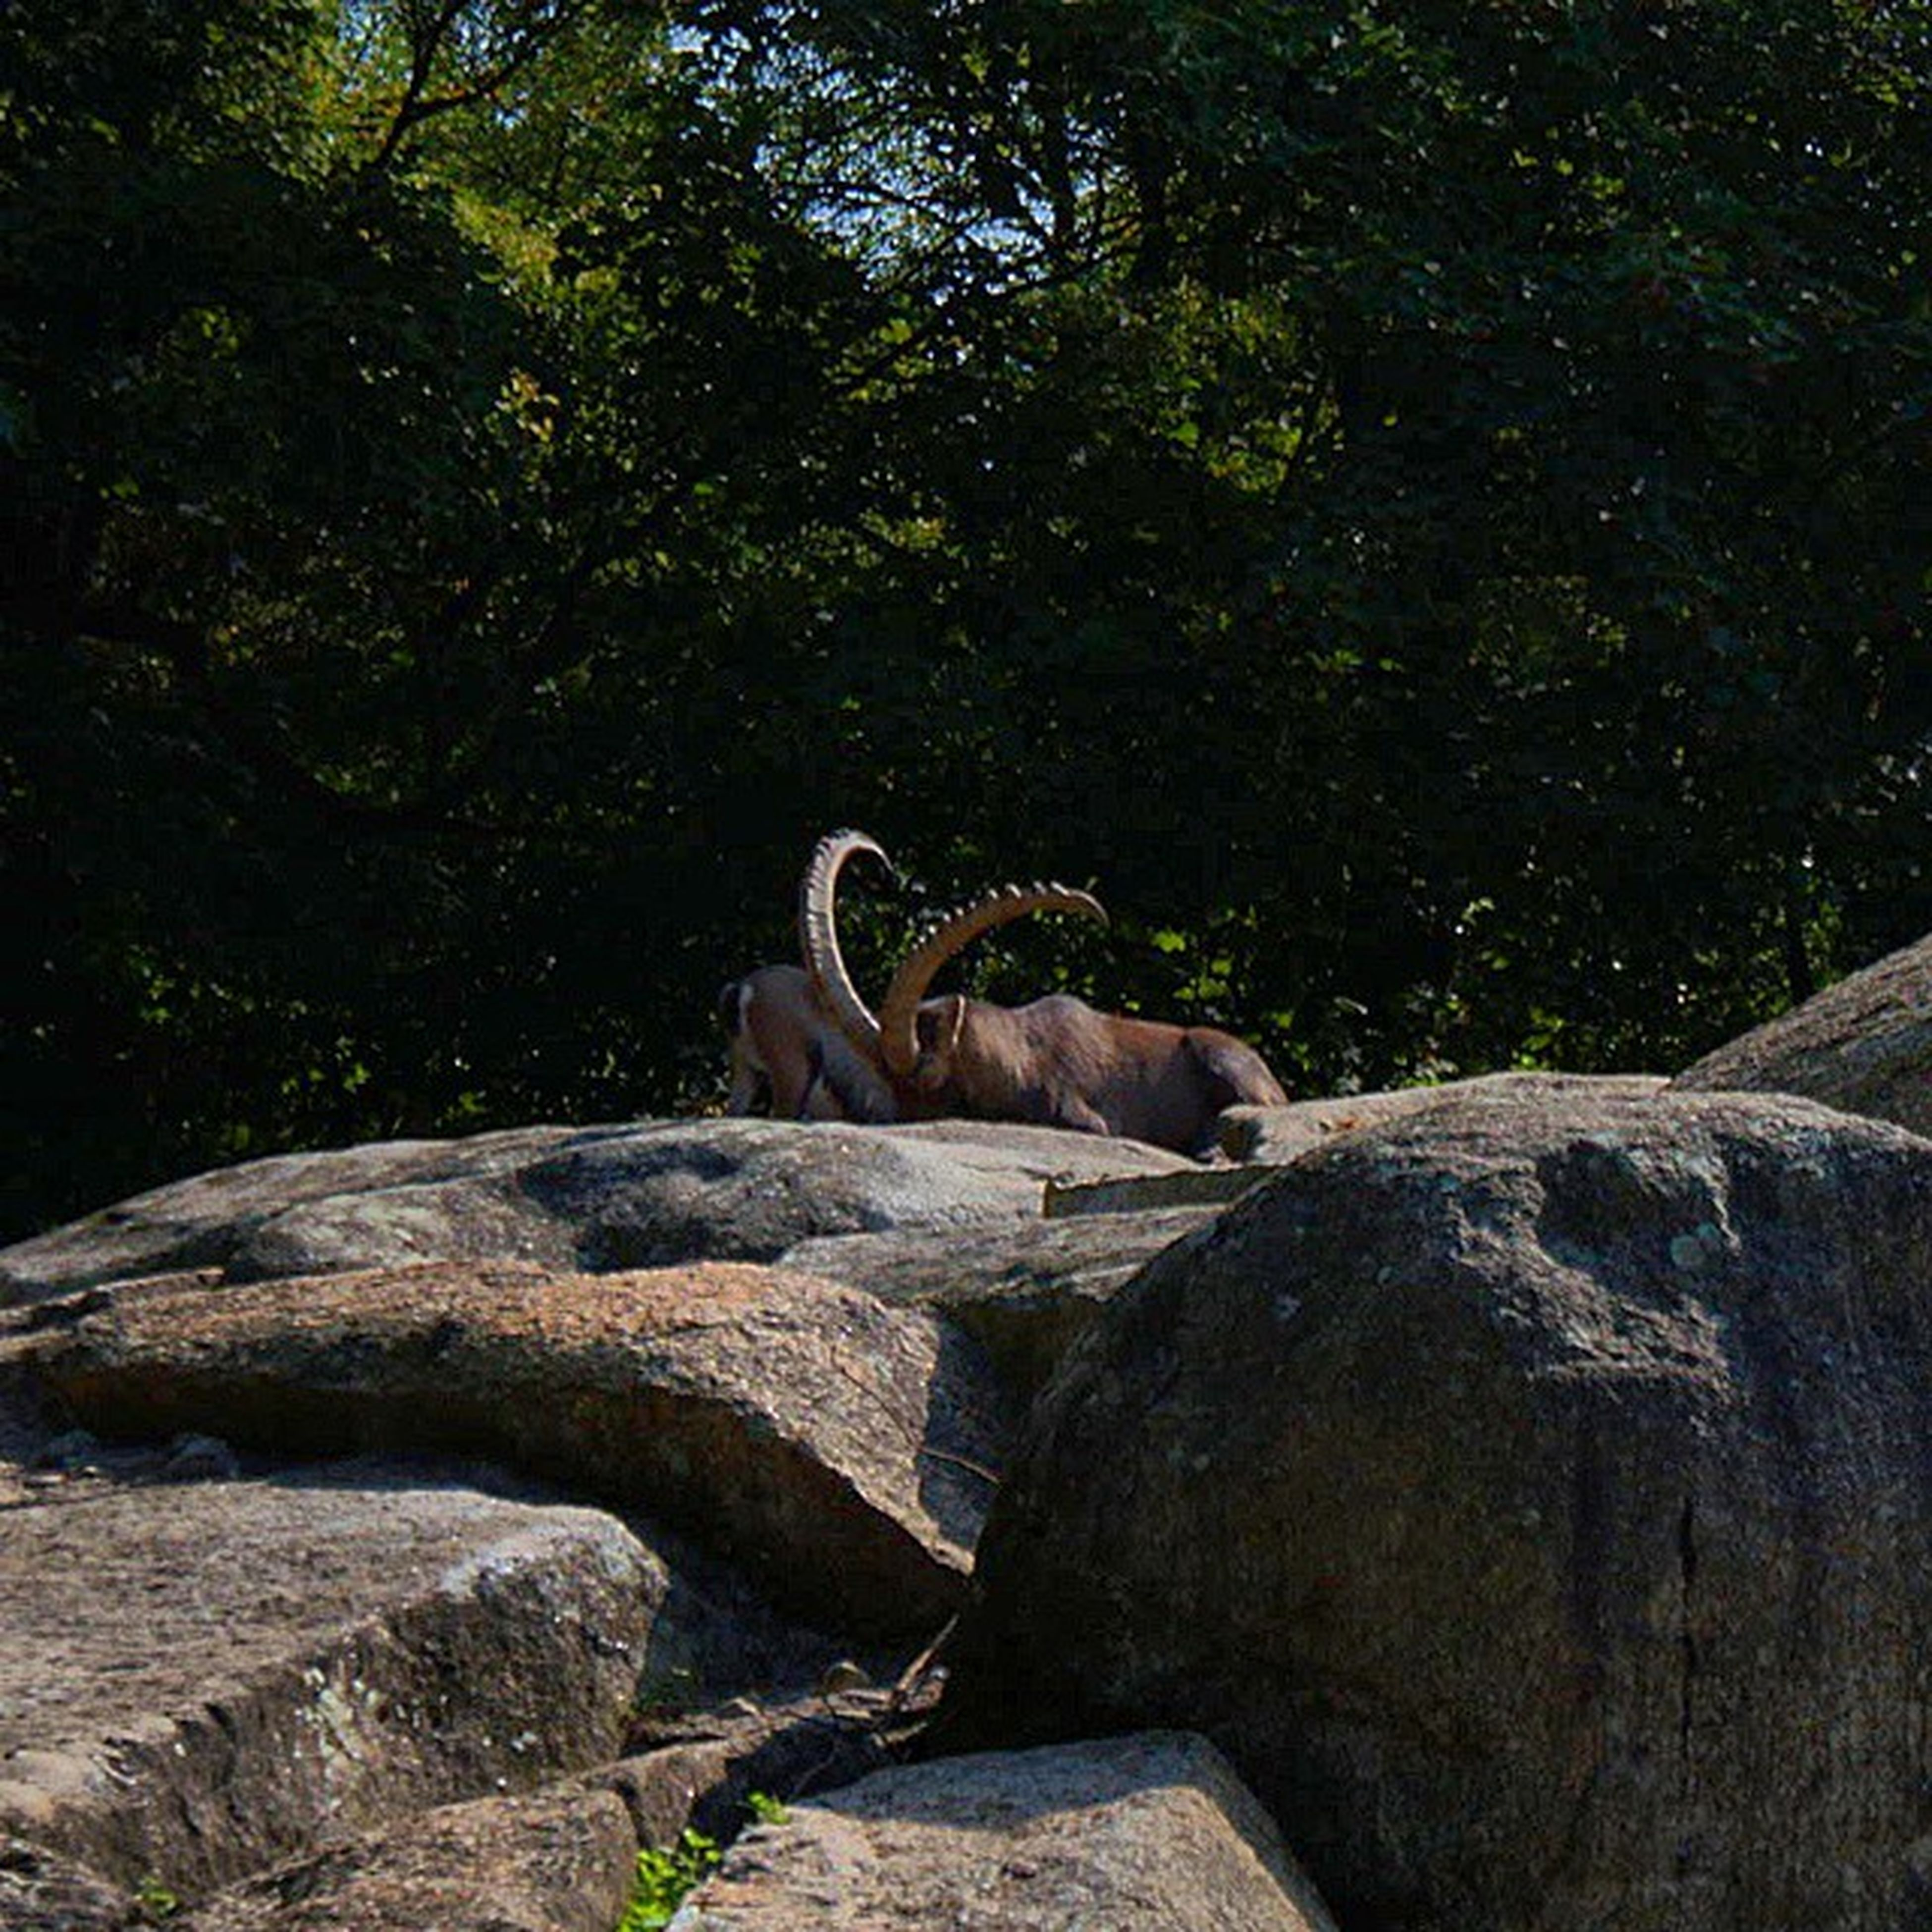 animal themes, mammal, one animal, domestic animals, tree, relaxation, two animals, wildlife, resting, side view, nature, zoology, animals in the wild, rock - object, herbivorous, animal, sunlight, lying down, vertebrate, outdoors